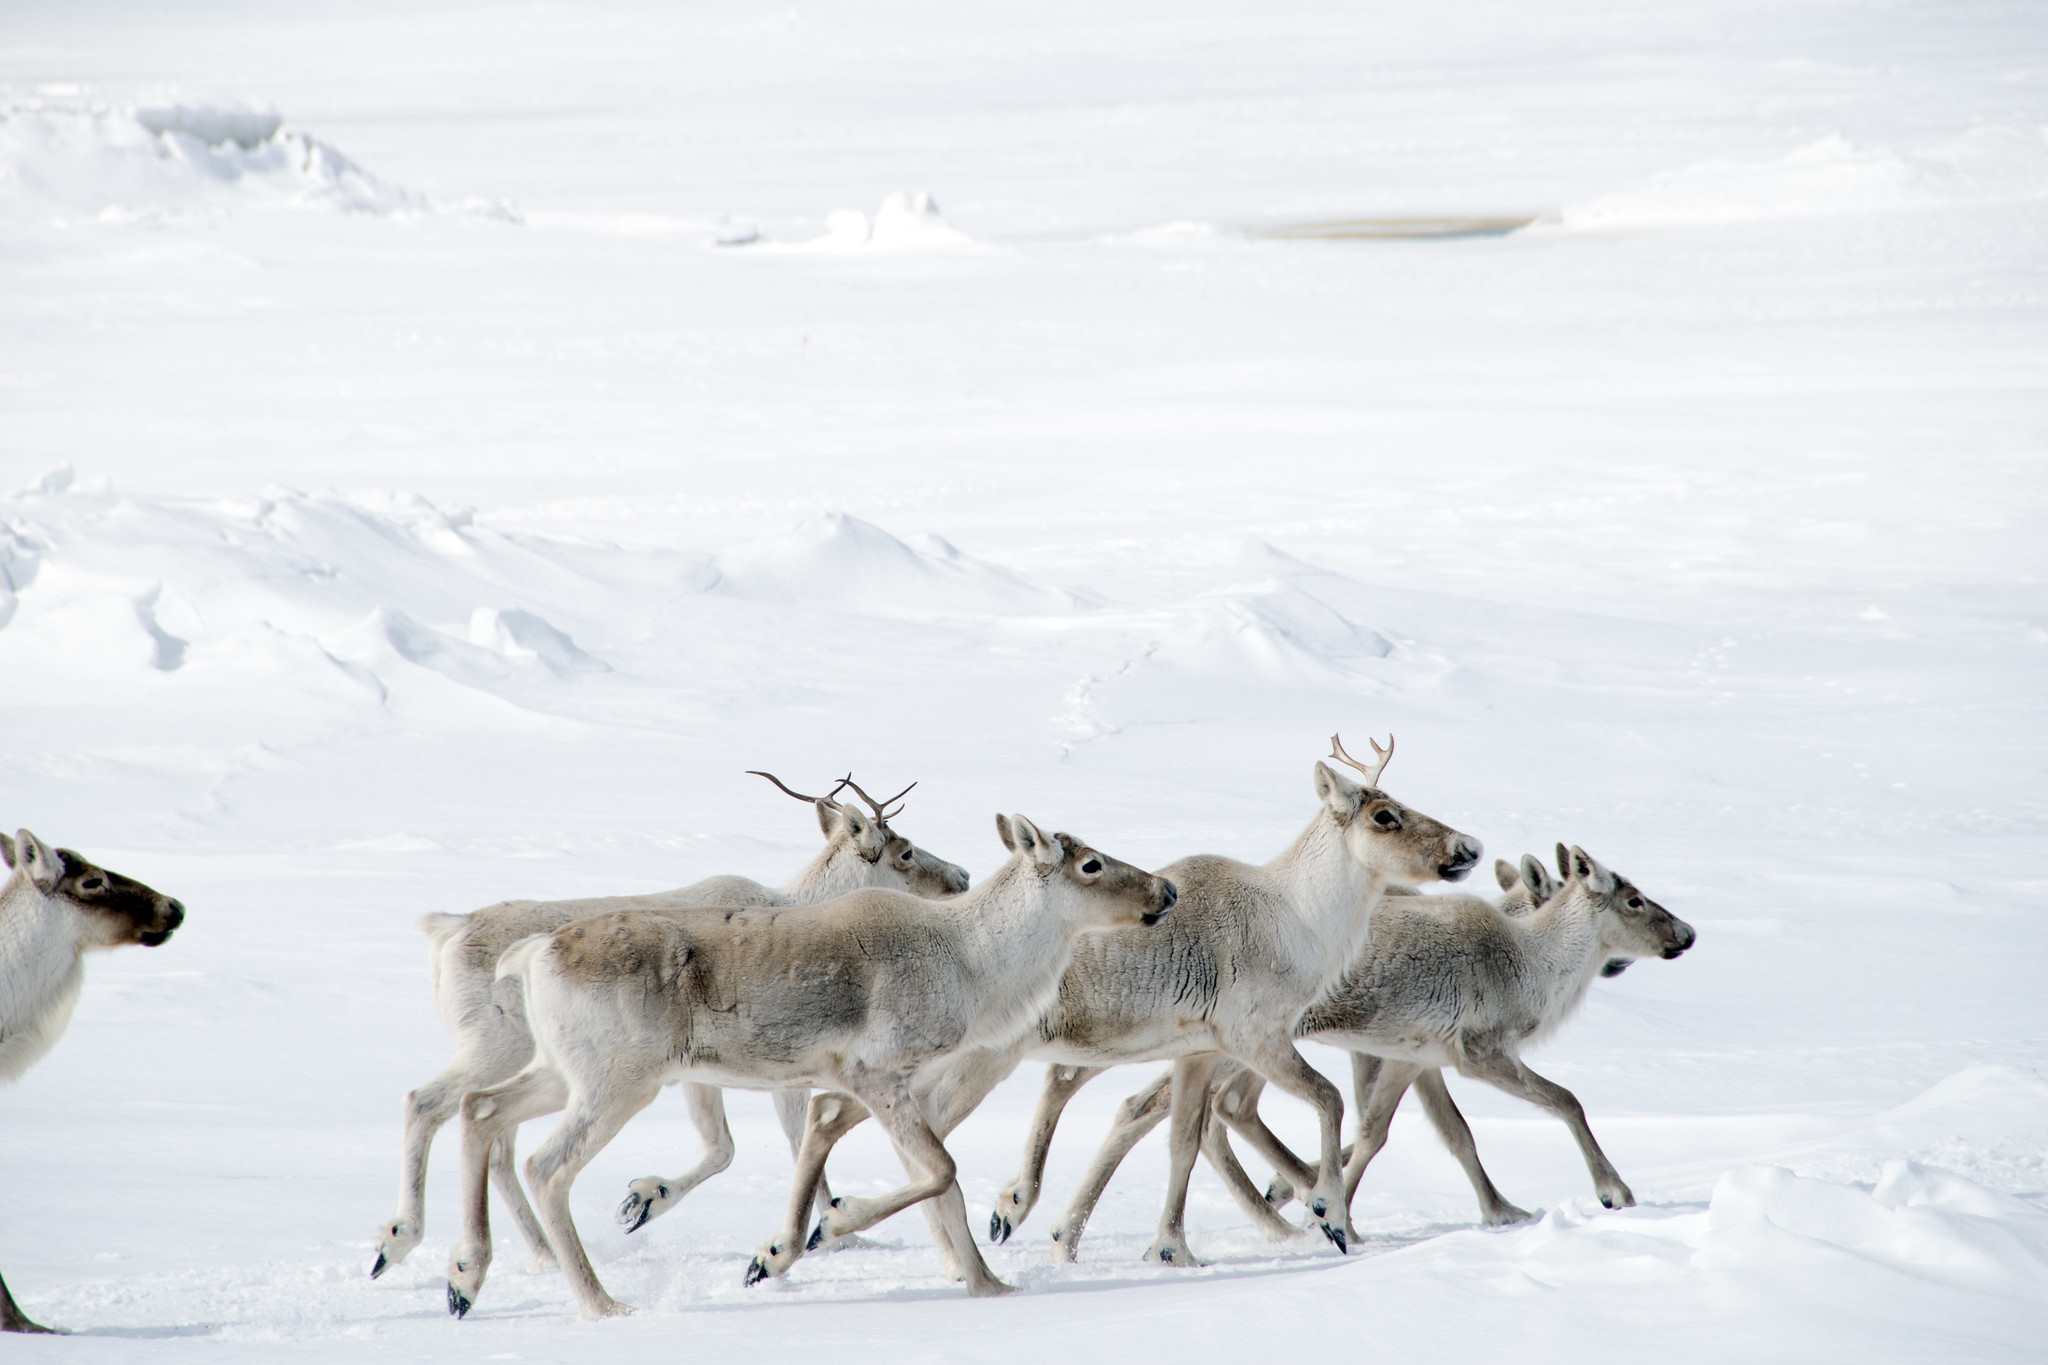 Caribou crossing pack ice (Paul Asman and Jill Lenoble, Flickr)